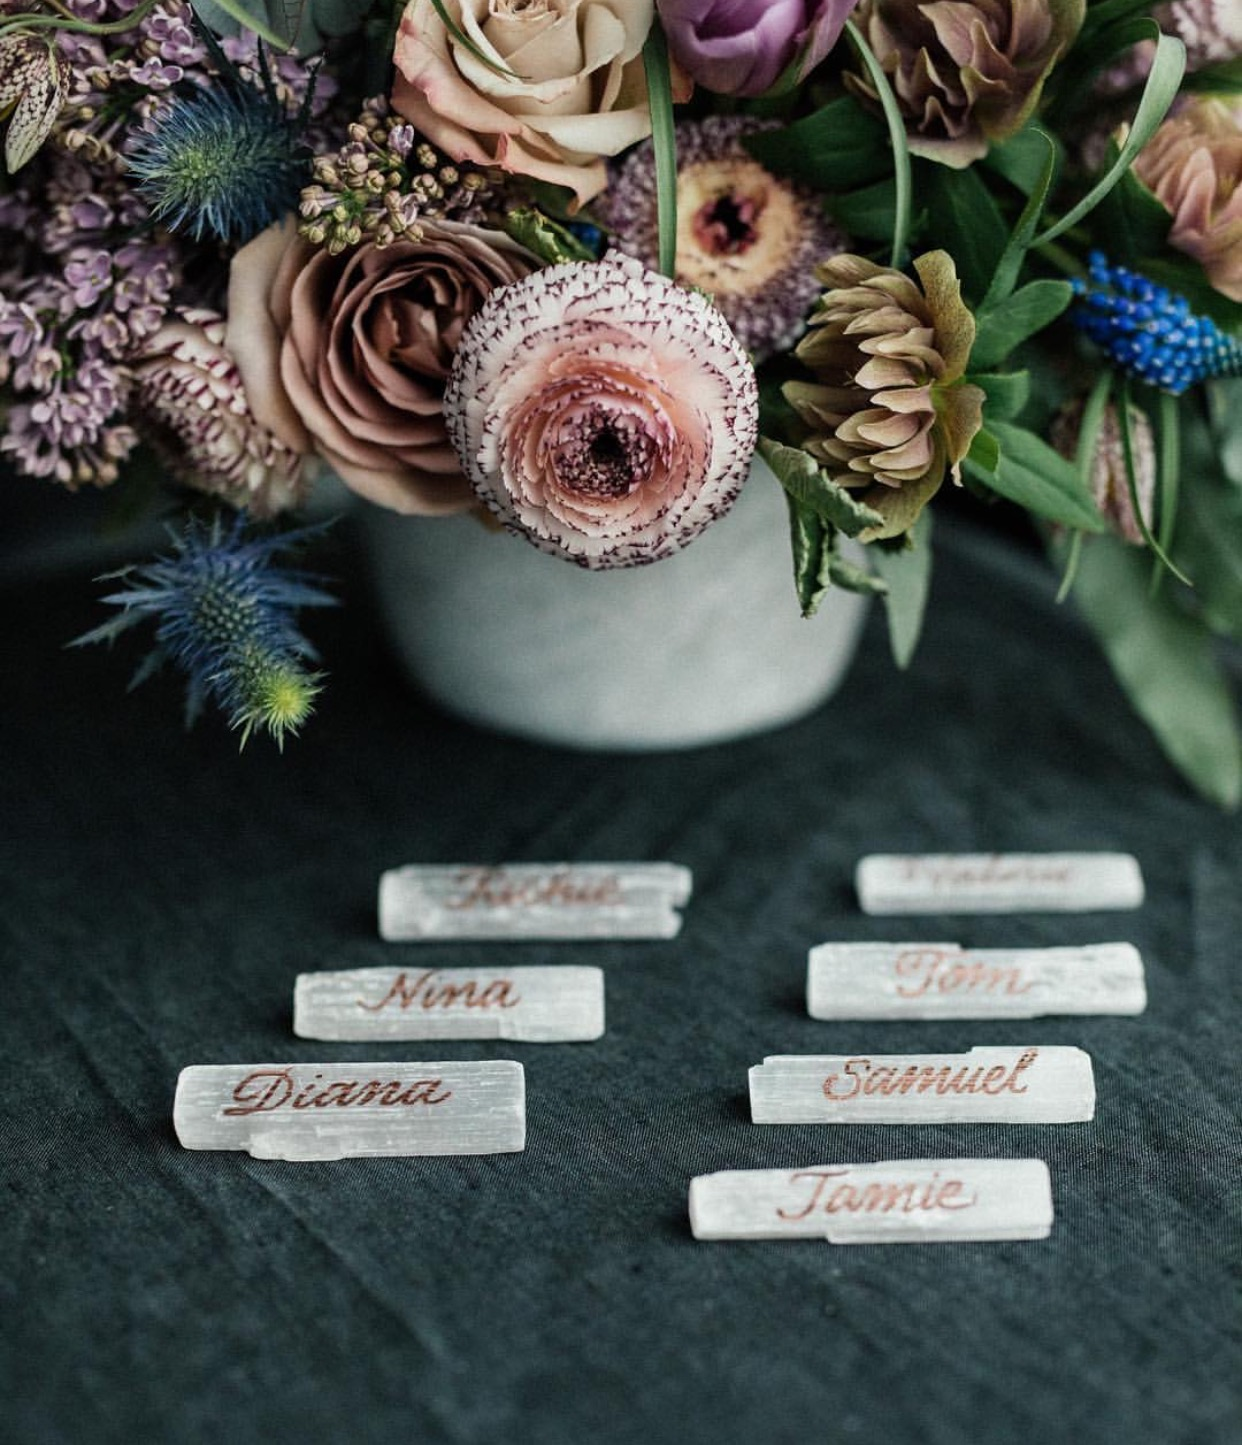 Crystal selenite place cards with copper calligraphy   by www.chavelli.com